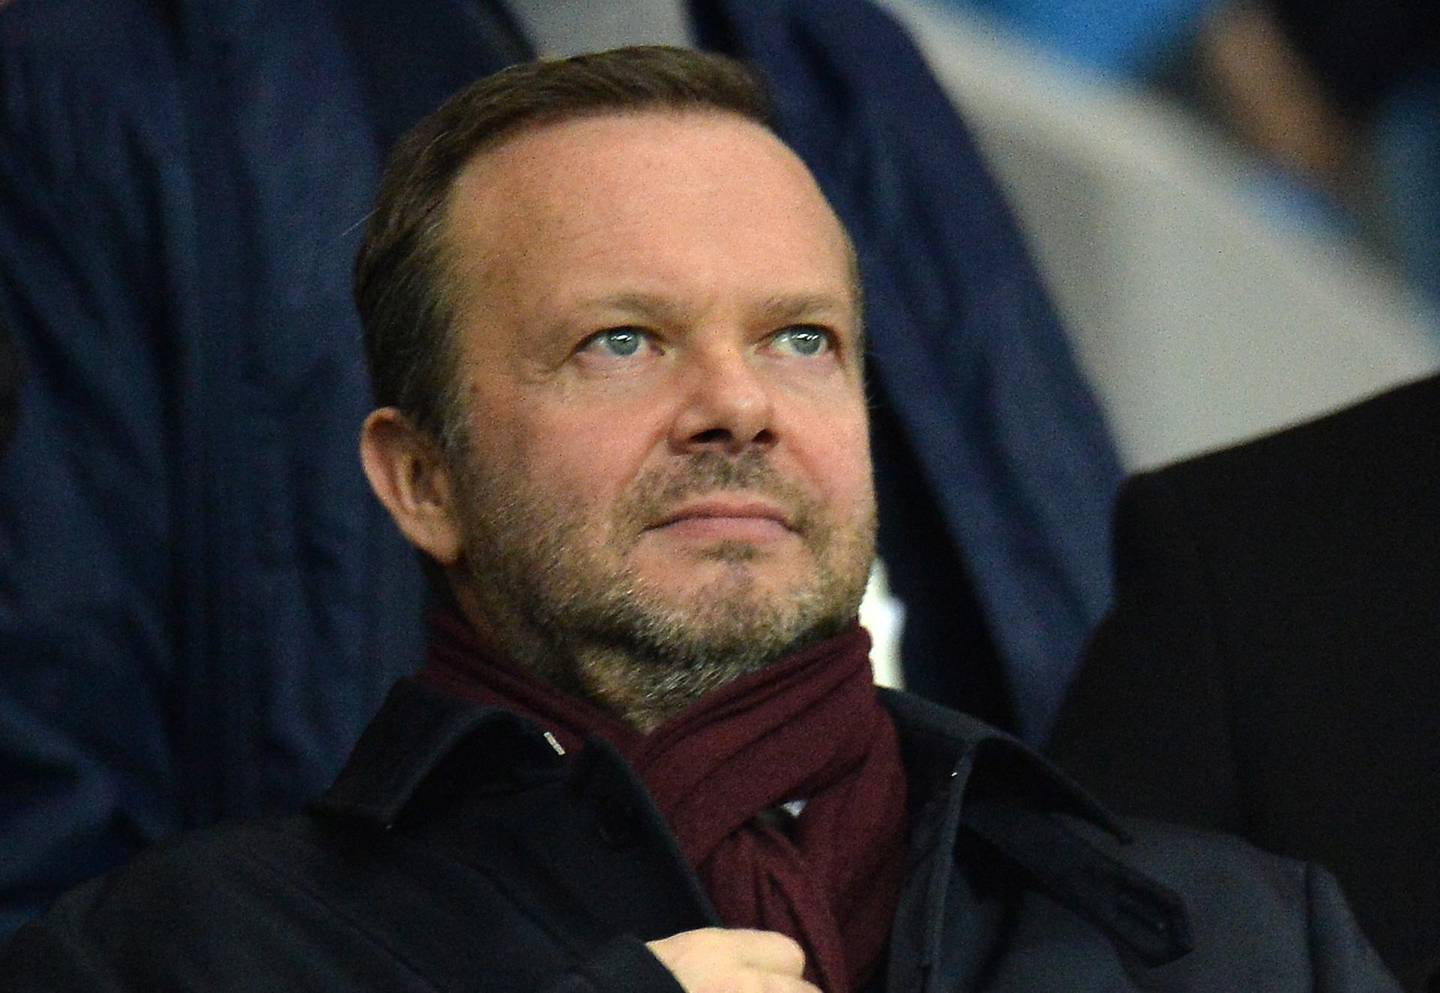 epa09148316 (FILE) - Executive vice-chairman of Manchester United Ed Woodward during the Carabao Cup semi final second leg match between Manchester City and Manchester United in Manchester, Britain, 29 January 2020 (reissued 20 April 2021). Manchester United announced on 20 April 2021 that Woodward will step down from his role at the end of 2021.  EPA/PETER POWELL *** Local Caption *** 55832279